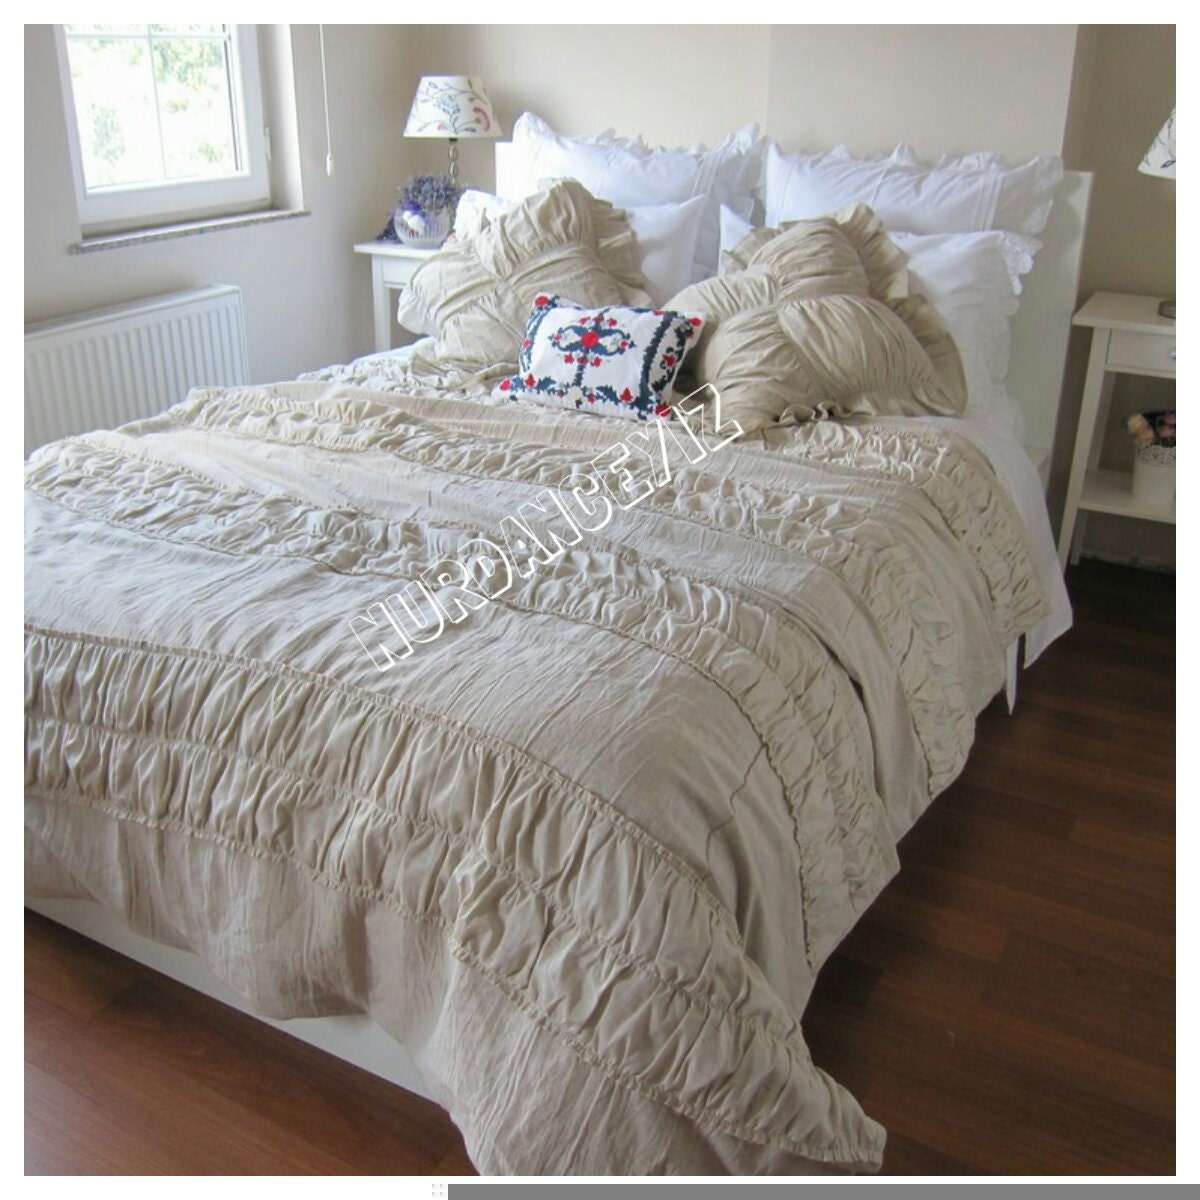 Shabby Chic Bedding: Ruched Bedding-Shabby Cottage Chic Duvet Cover Full Queen